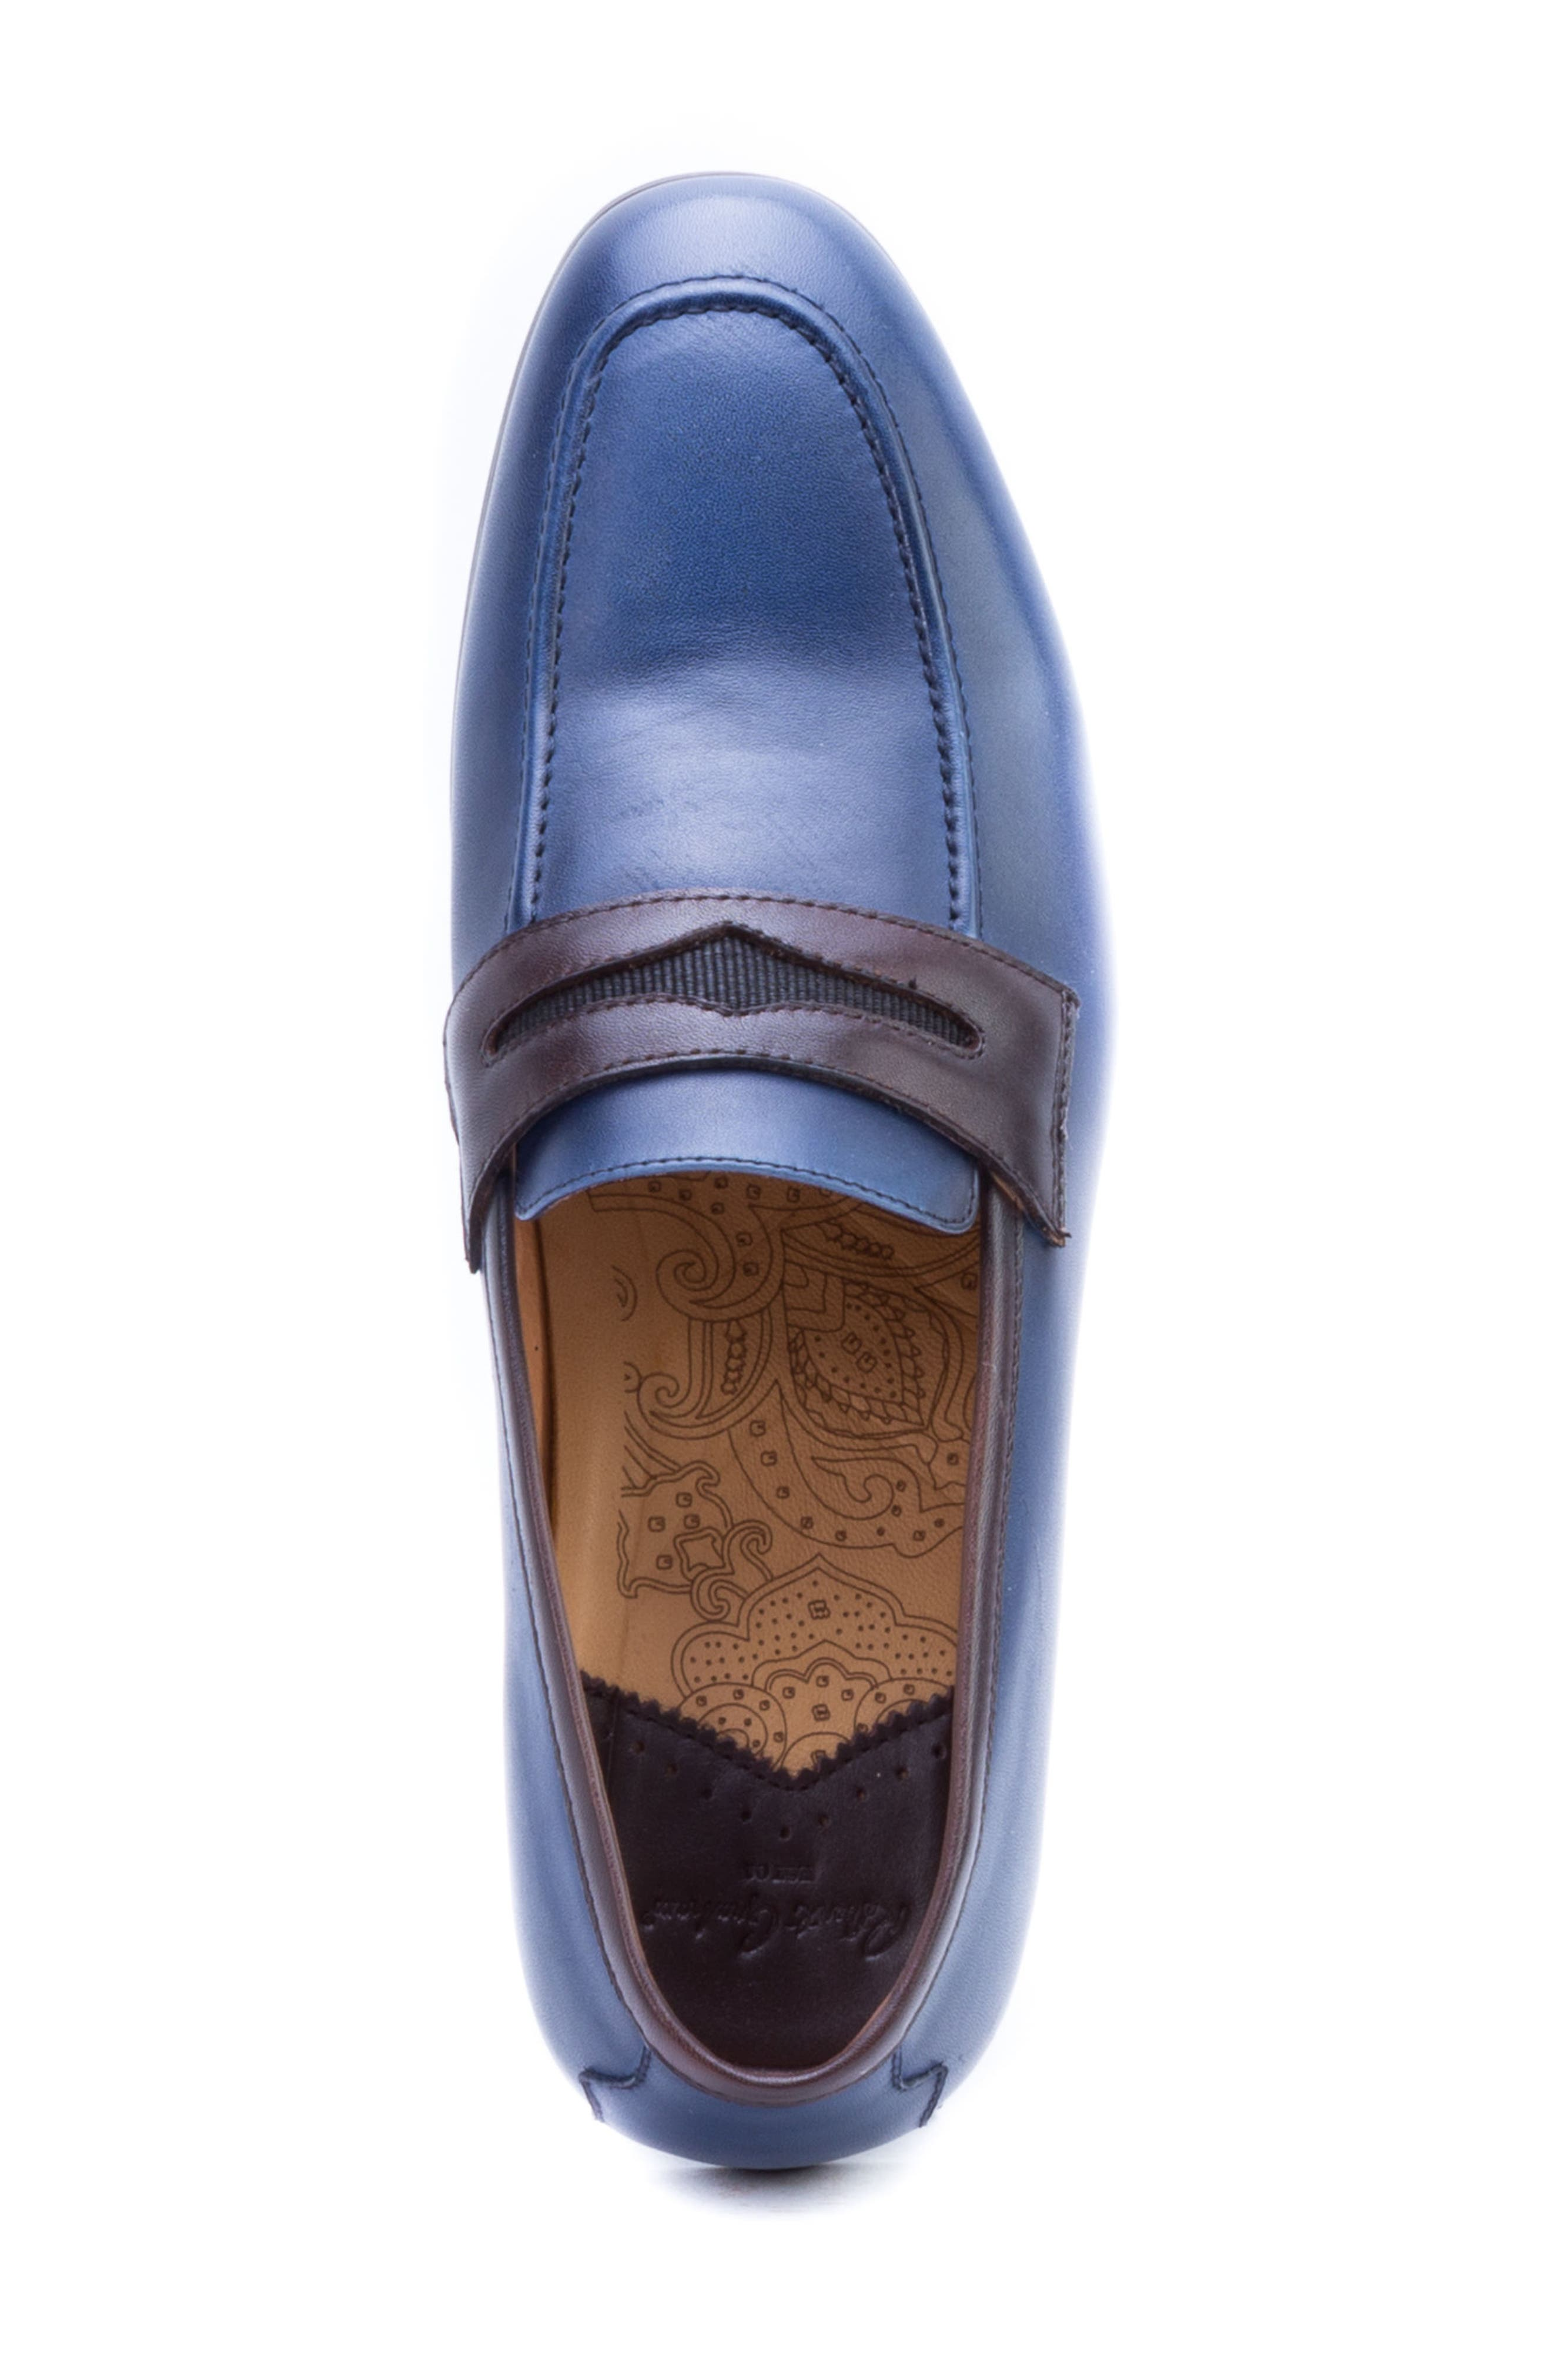 Apron Toe Penny Loafer,                             Alternate thumbnail 5, color,                             Navy Leather